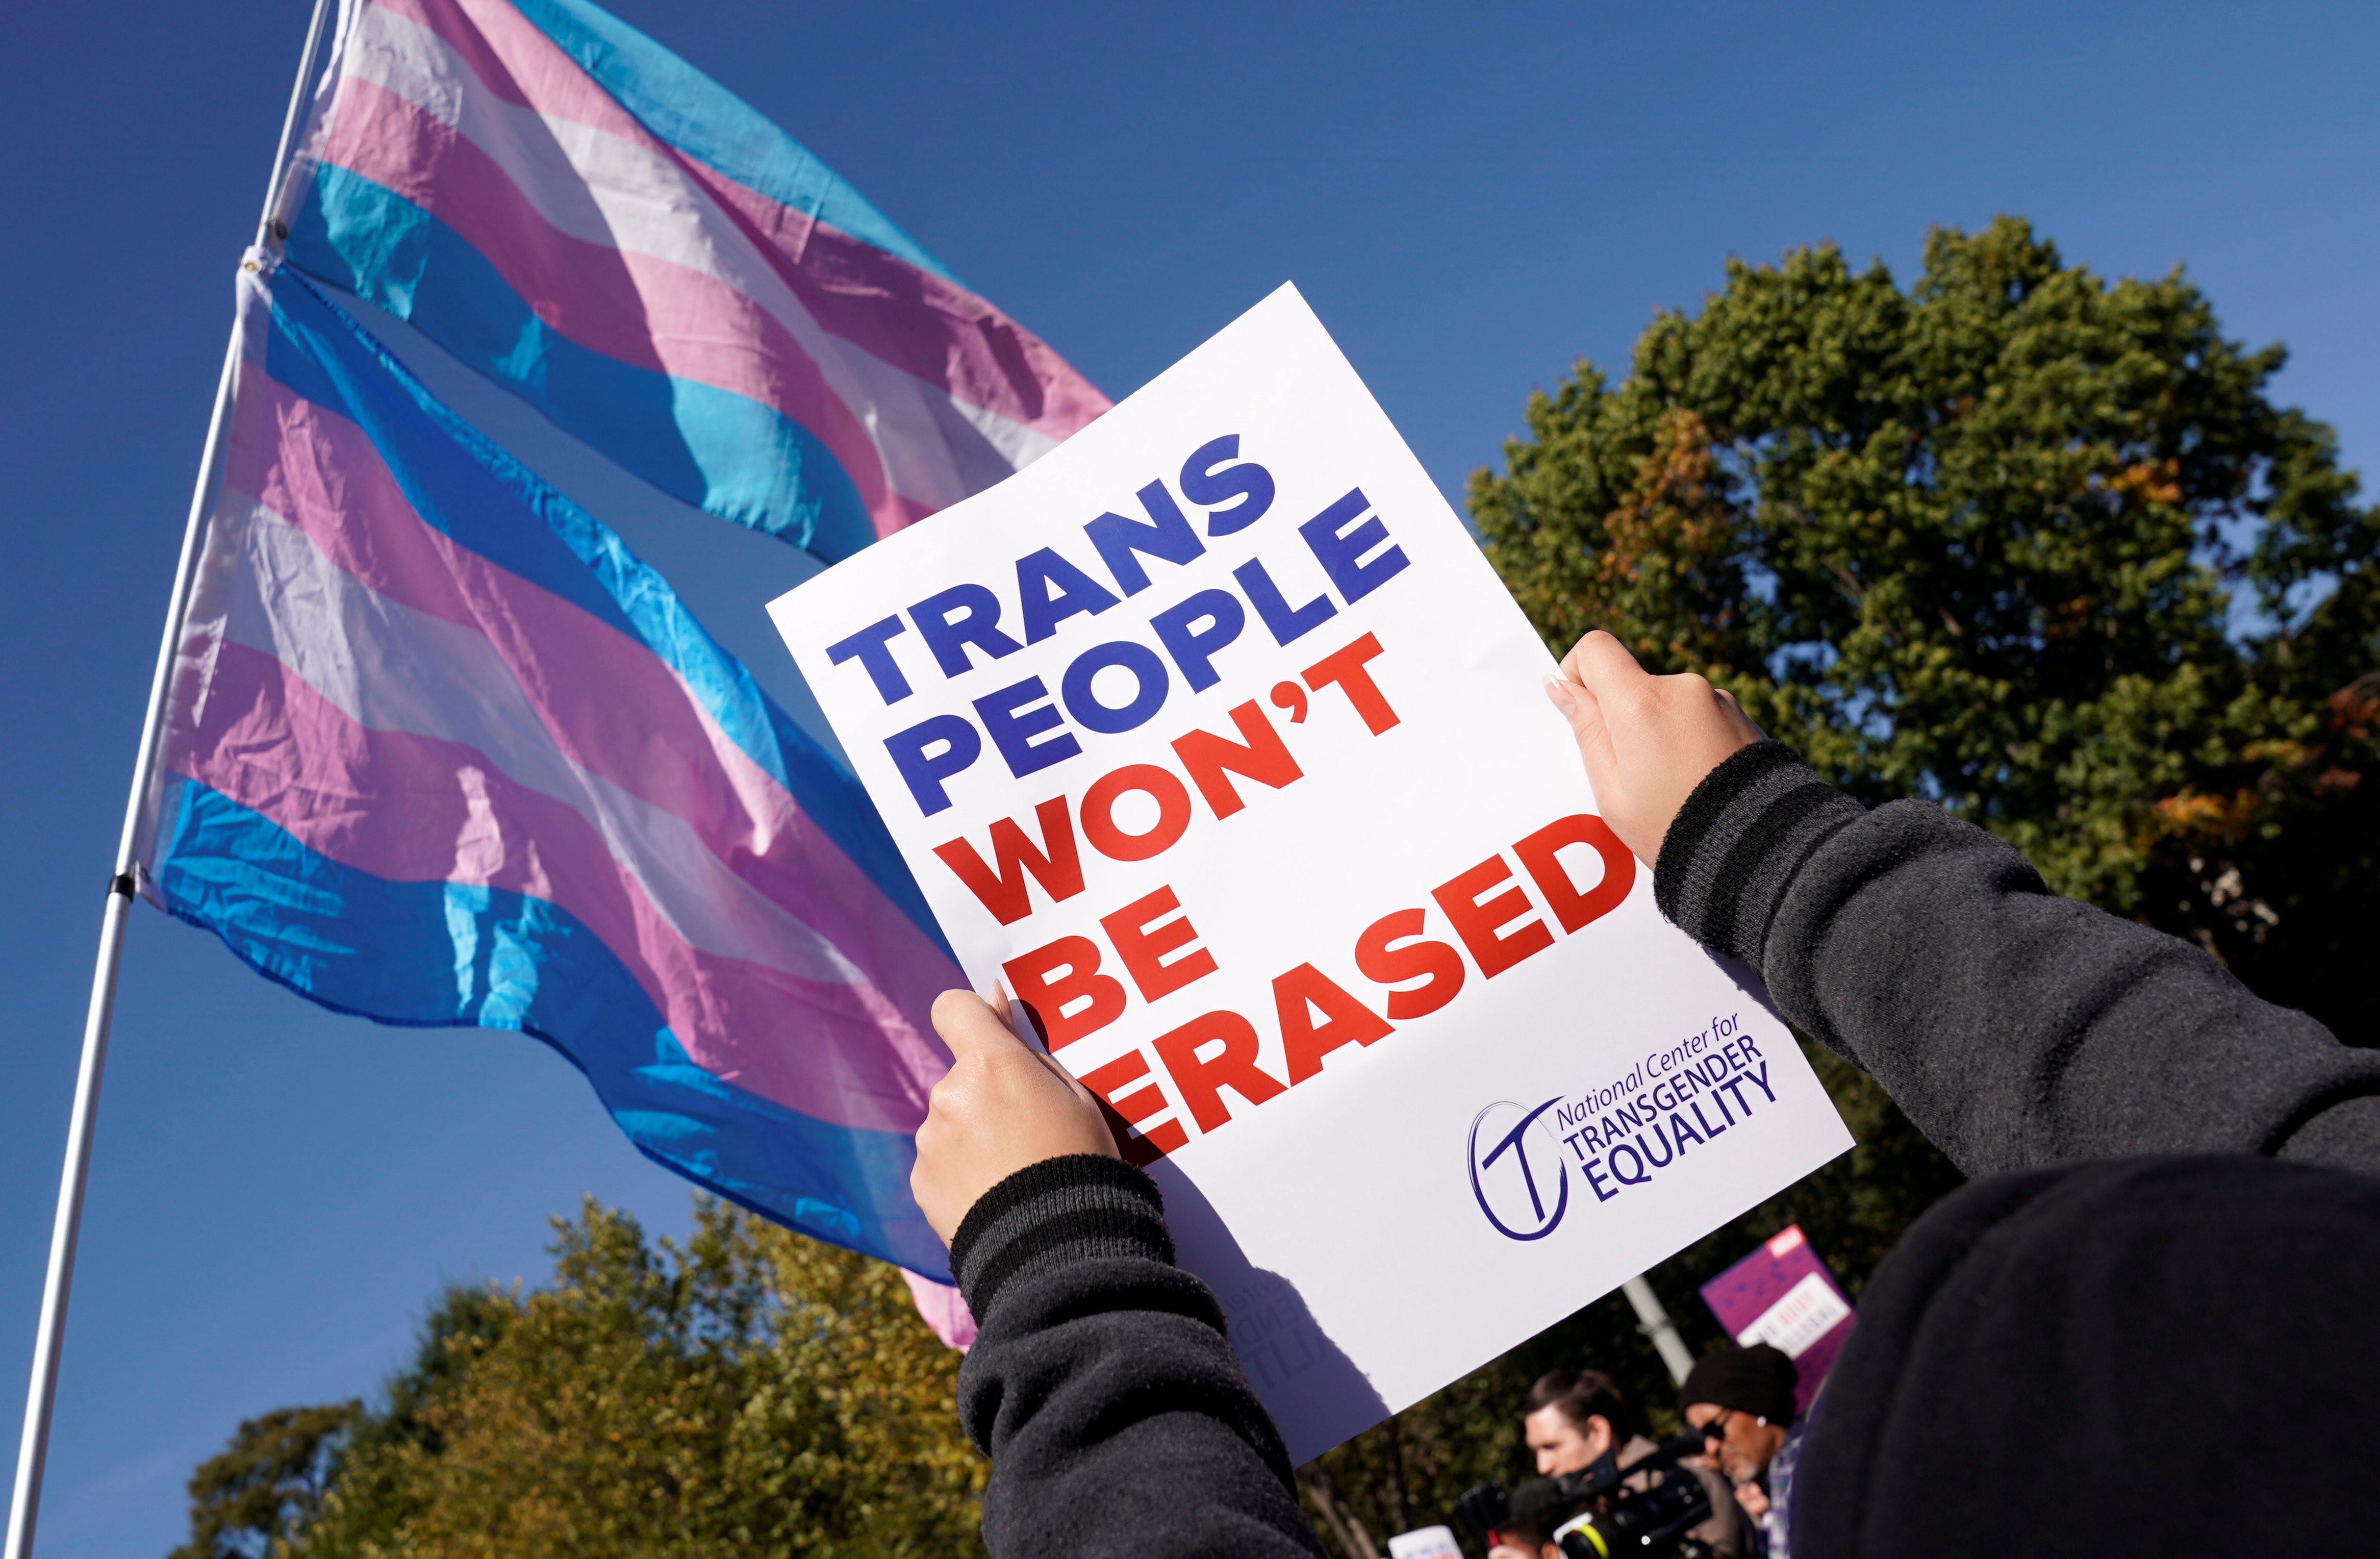 Transgender rights activists protest the government's alleged attempt to strip transgender people of official recognition at the White House in Washington, U.S., October 22, 2018. REUTERS/Kevin Lamarque